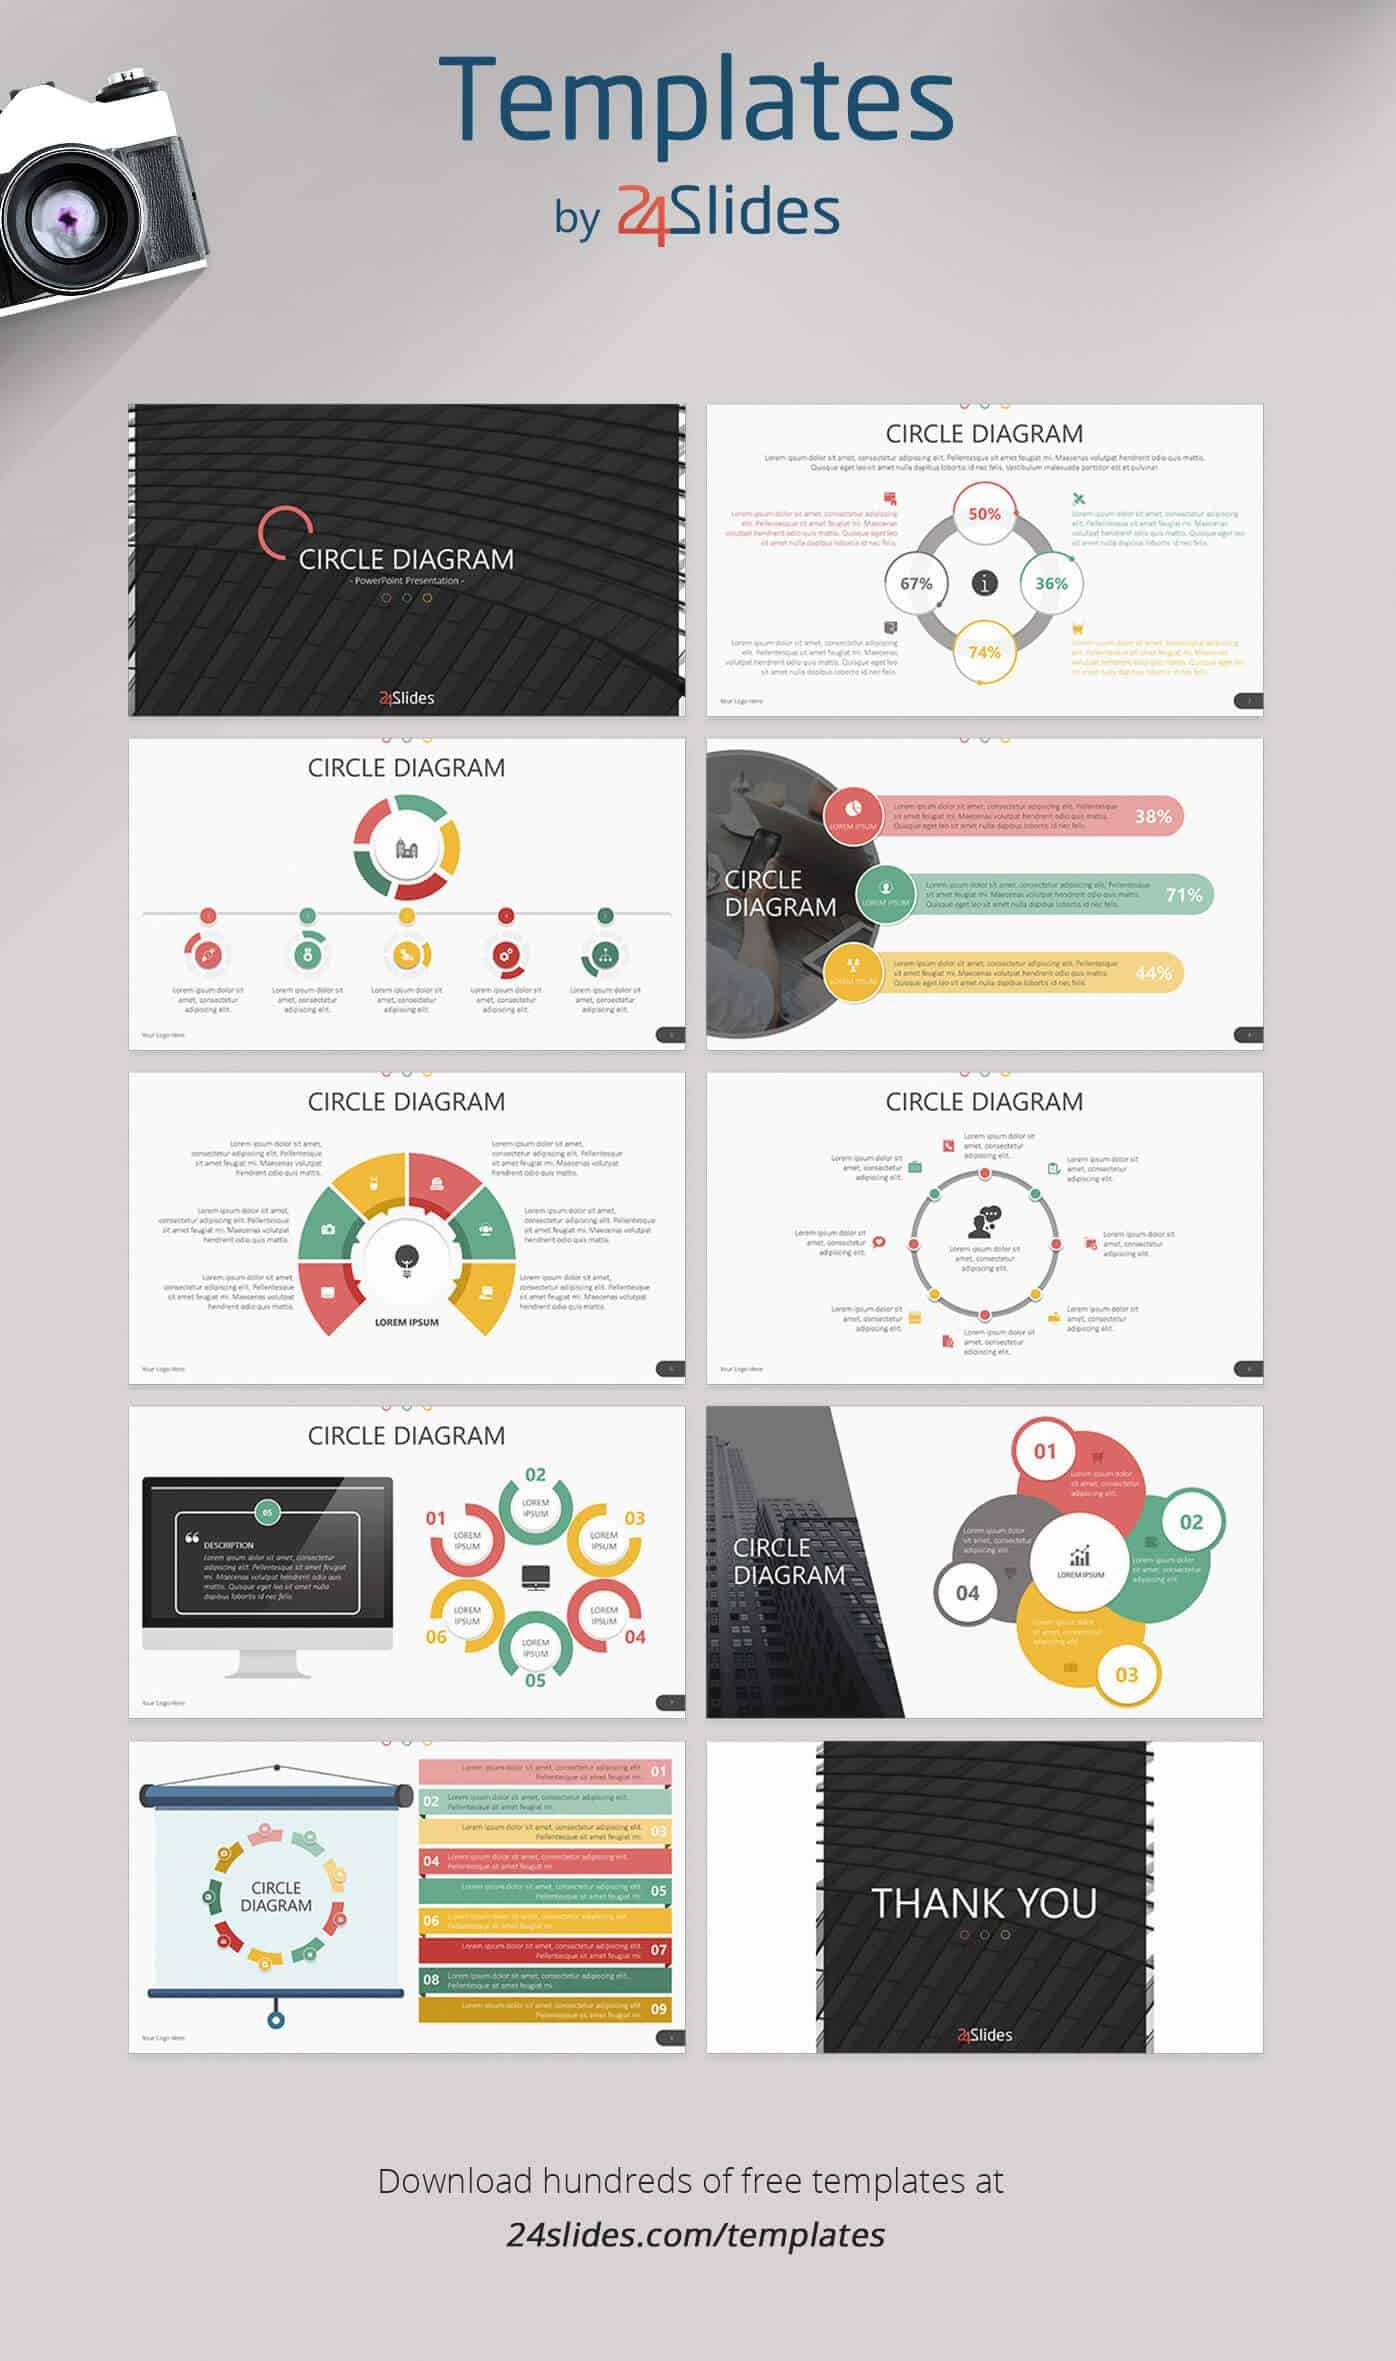 15 Fun And Colorful Free Powerpoint Templates   Present Better Pertaining To Fun Powerpoint Templates Free Download